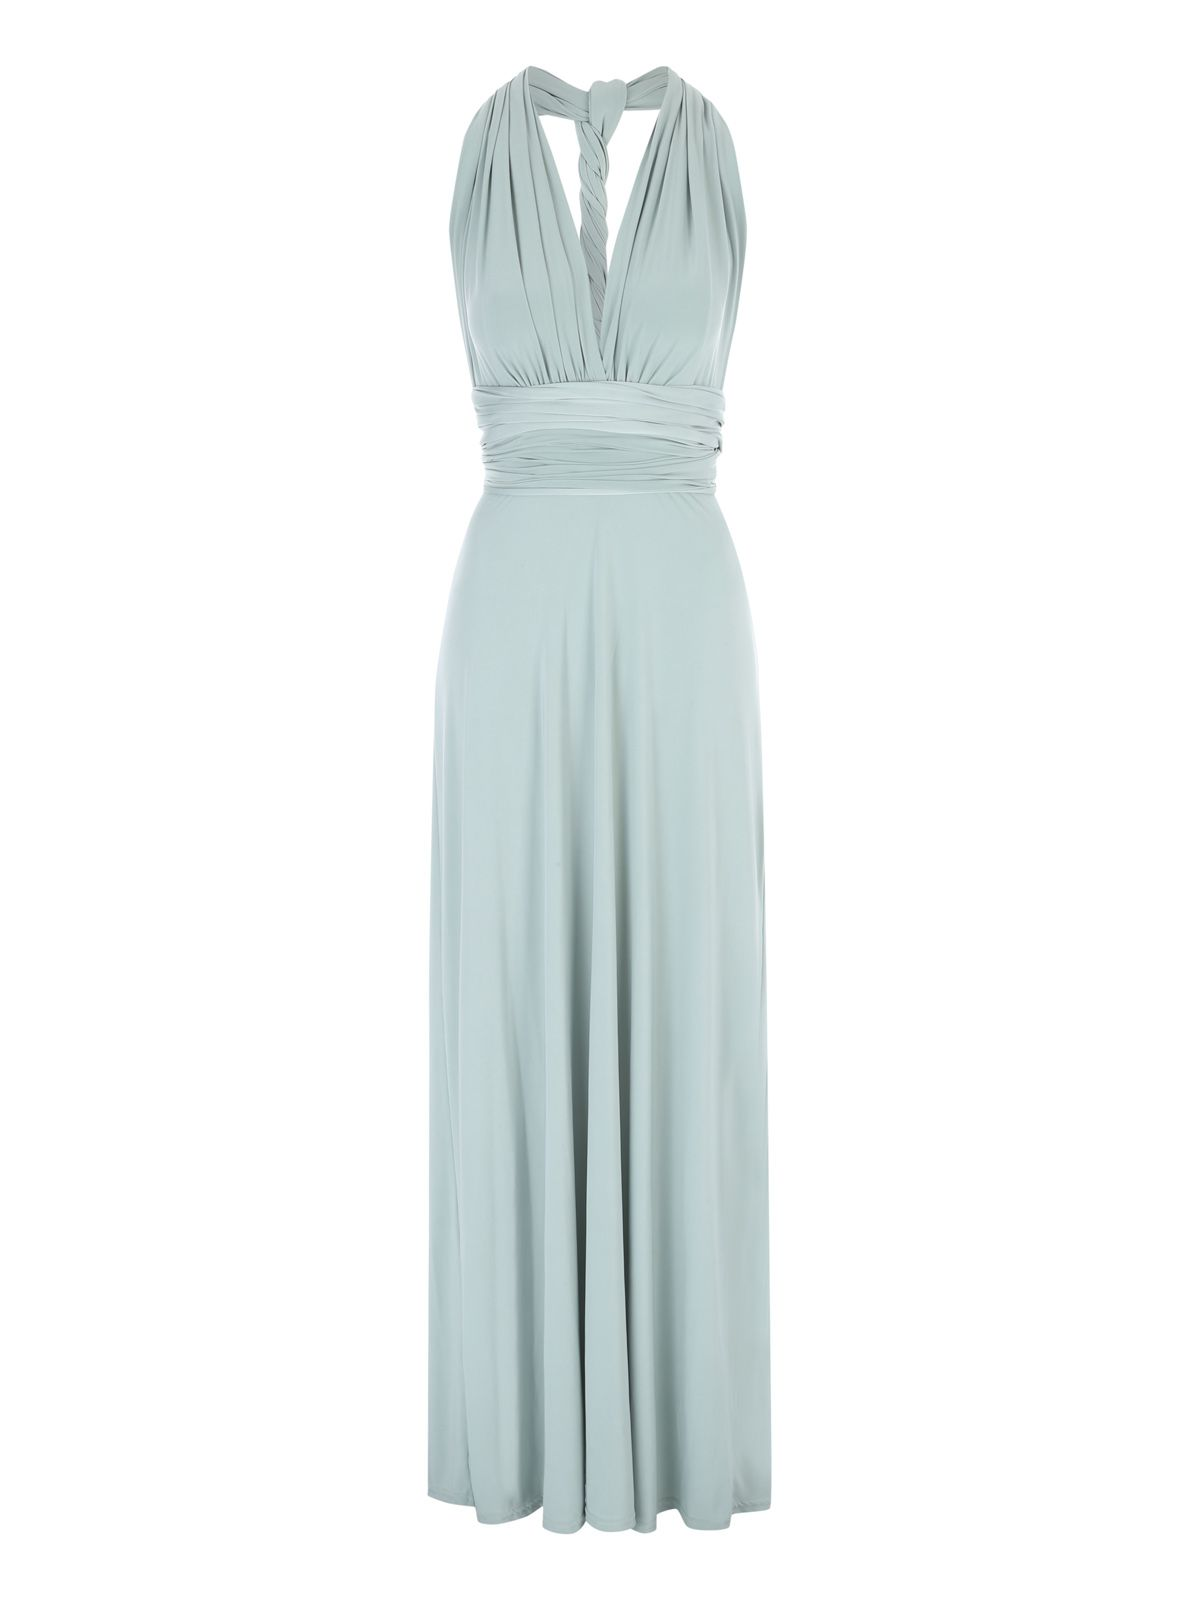 Jane Norman Multiway Maxi Dress, Green